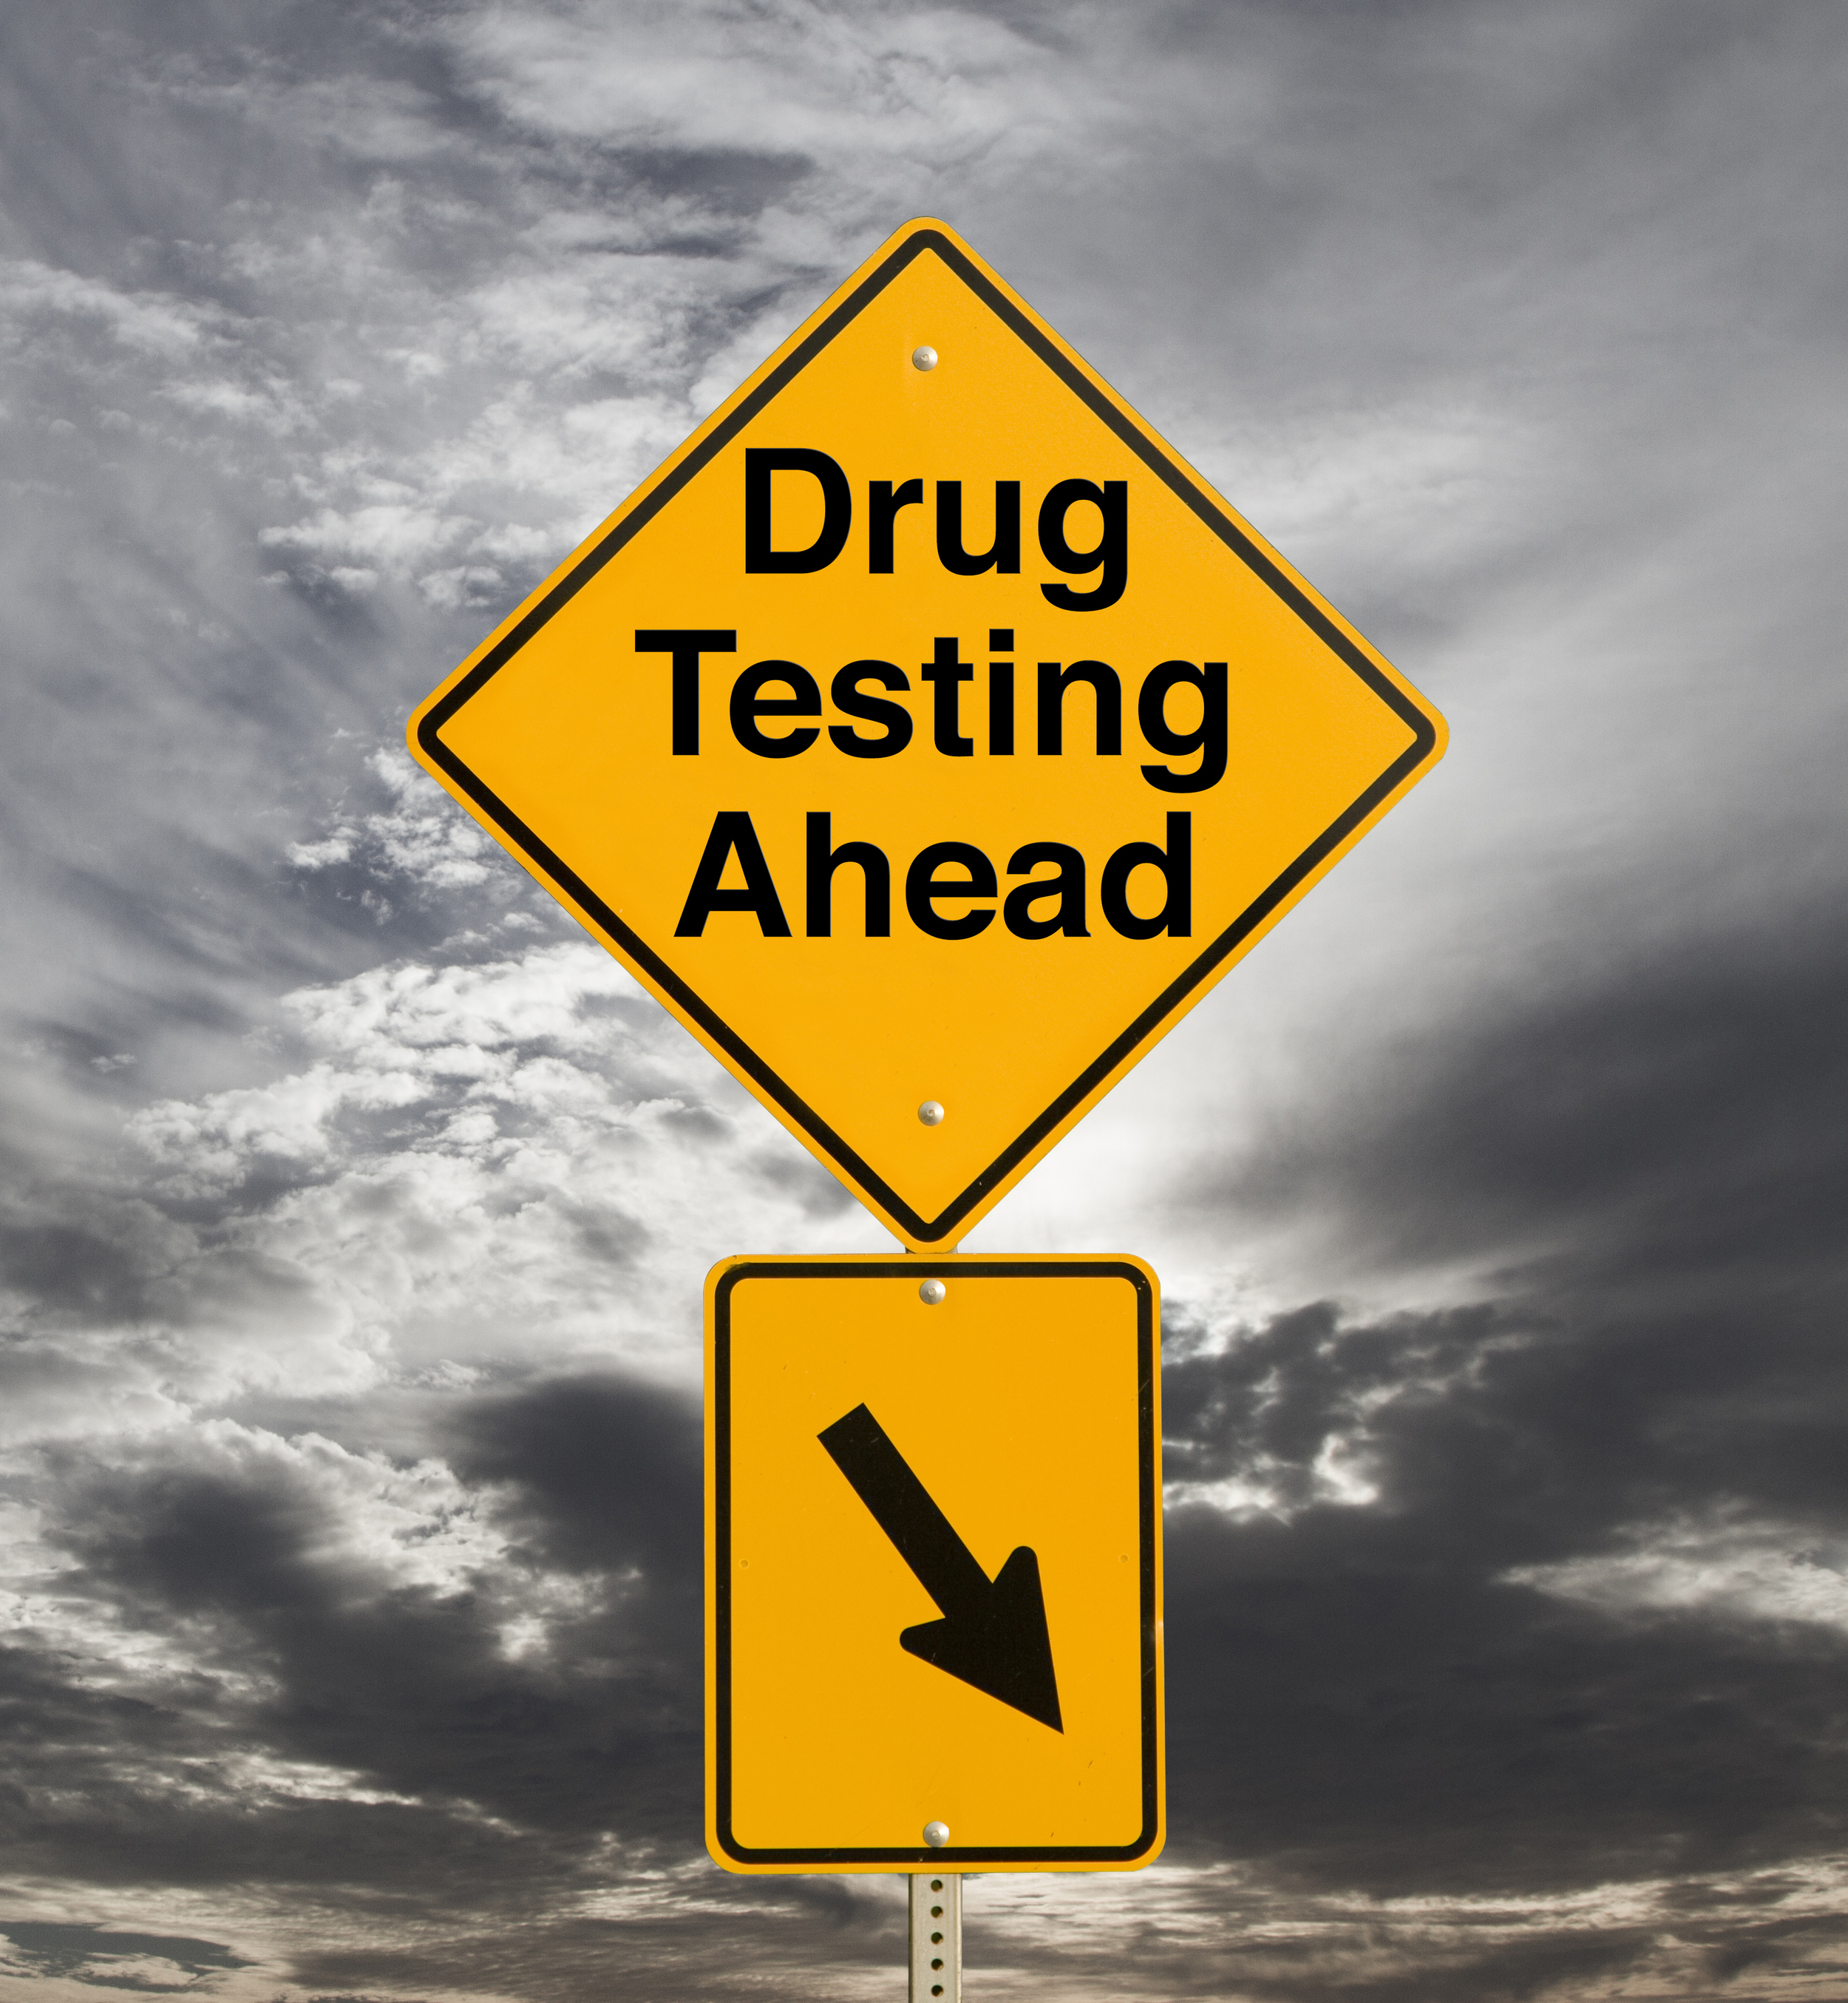 Owner Operator Direct - Drug Testing for Commercial Truck Drivers